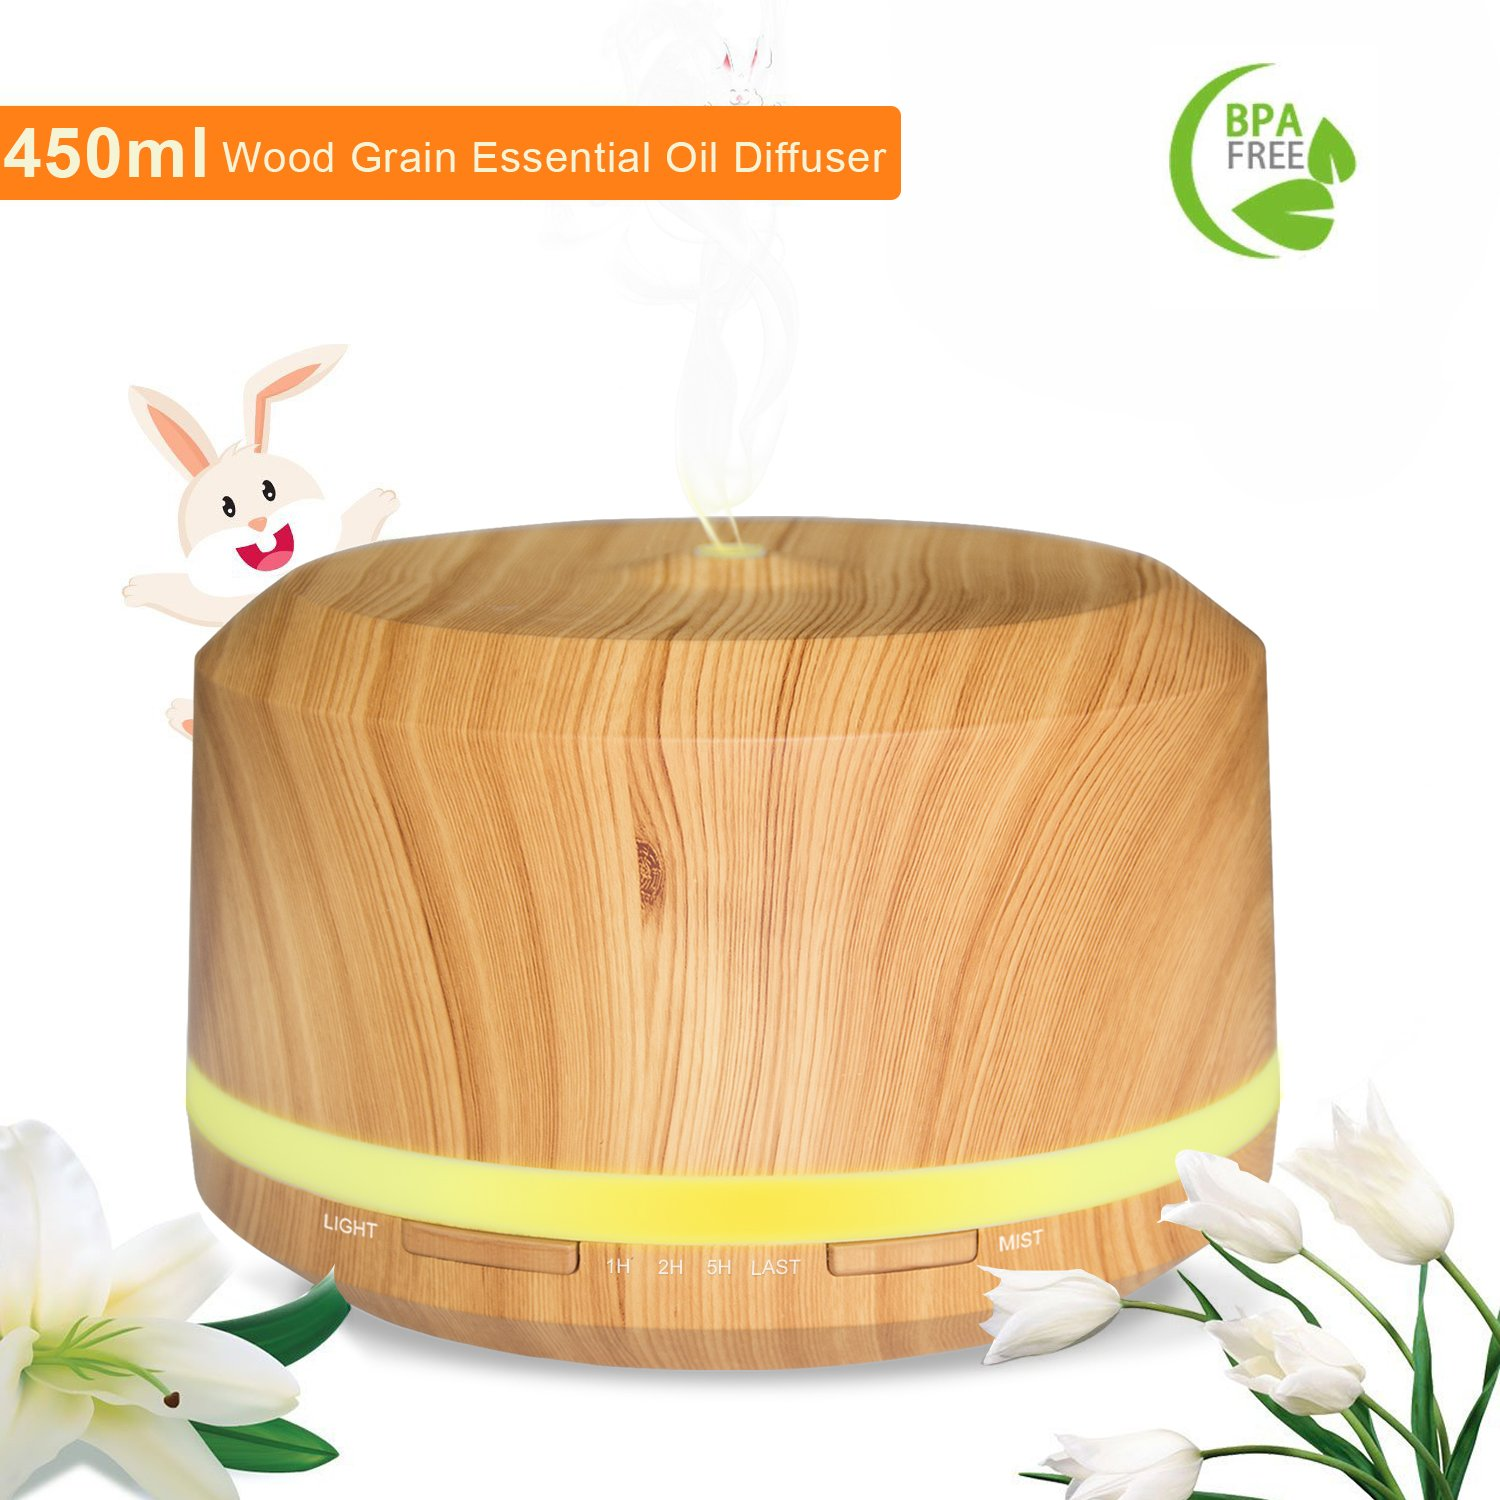 450ML Ultrasonic Oil Diffuser Neloodony Cool Mist Aroma Diffuser Large Capacity Base Wood Grain with 4 Timer Settings and 8 Color LED Lights NEL-AD-450ML-UK-B